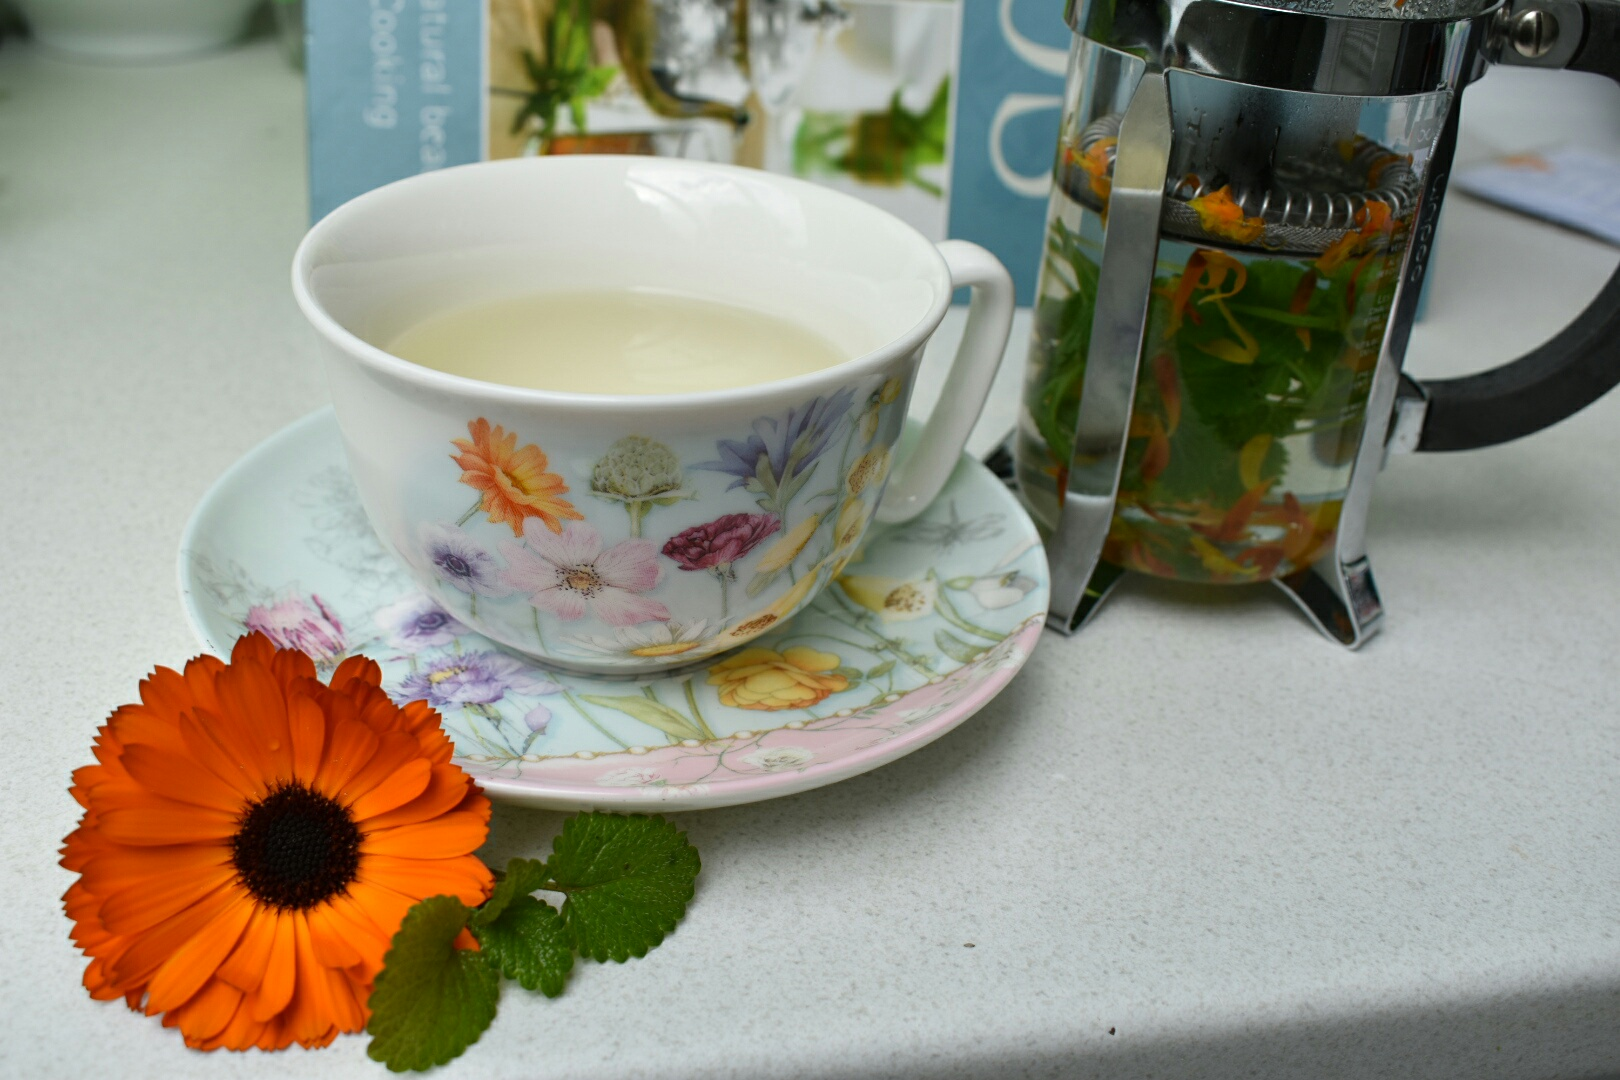 Calendula and Lemon Balm Tea